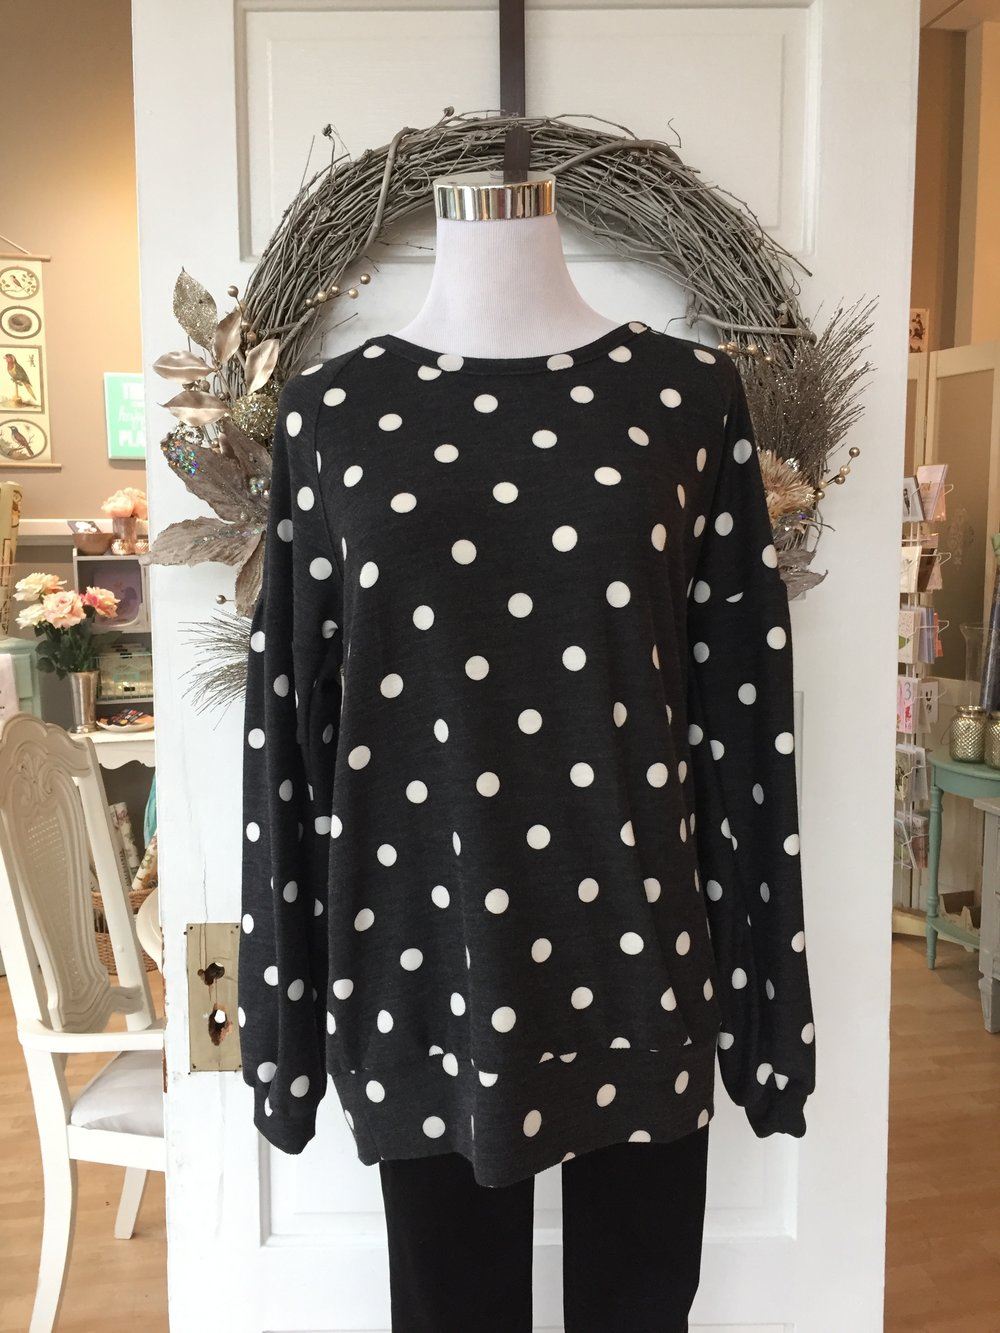 Polka Dot Top $35